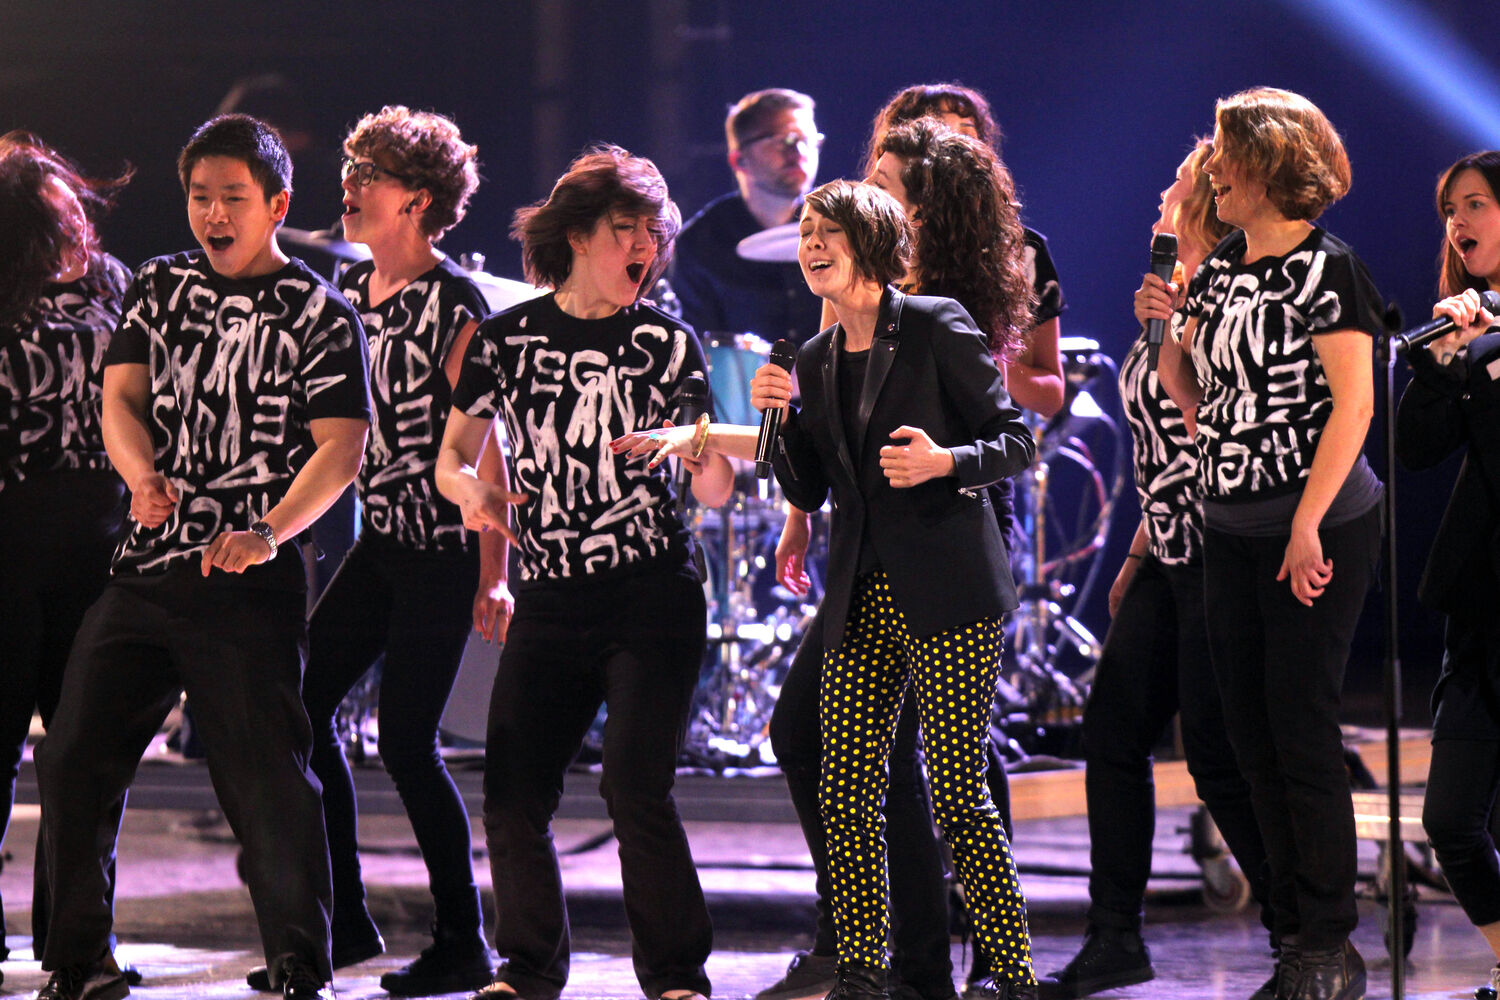 Tegan and Sara rehearse with back-up singers at the MTS Centre Friday. (Boris Minkevich / Winnipeg Free Press)